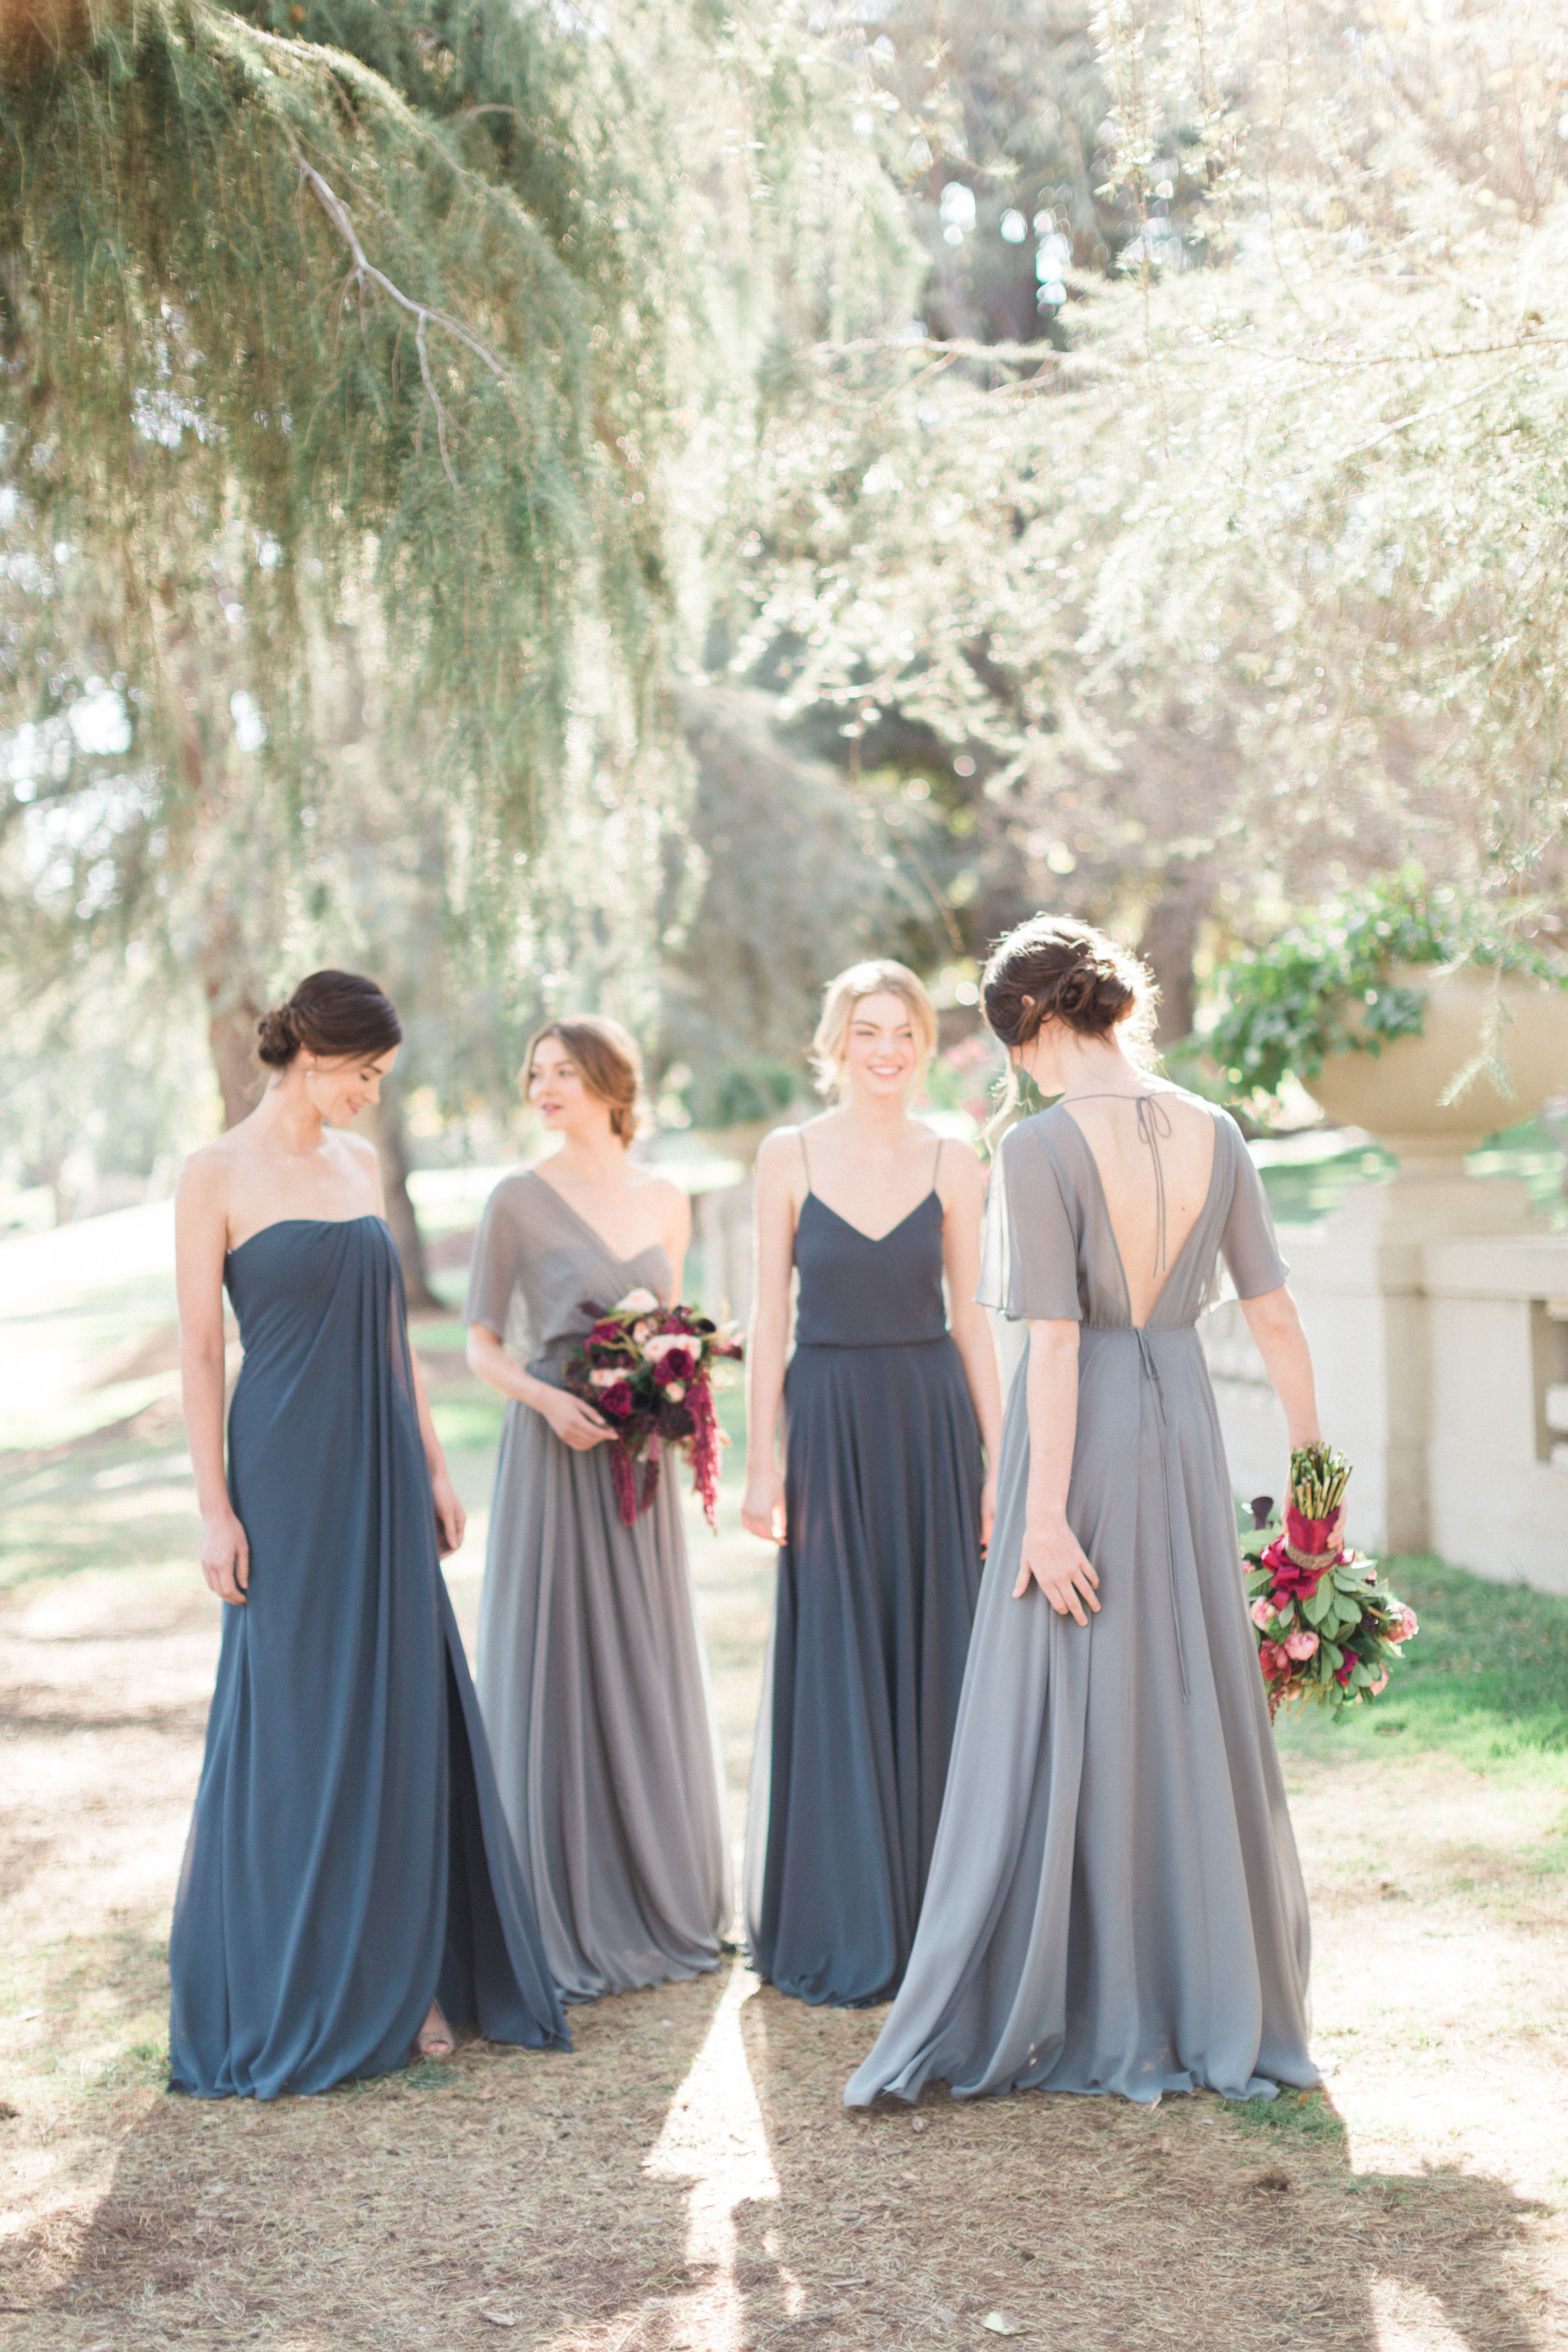 c9348a7cc582a Mix + Match shades of blues with Jenny Yoo // Racquel, Mira, Inesse and  Peyton Bridesmaid Dresses in Denmark Blue + Storm Luxe Chiffon